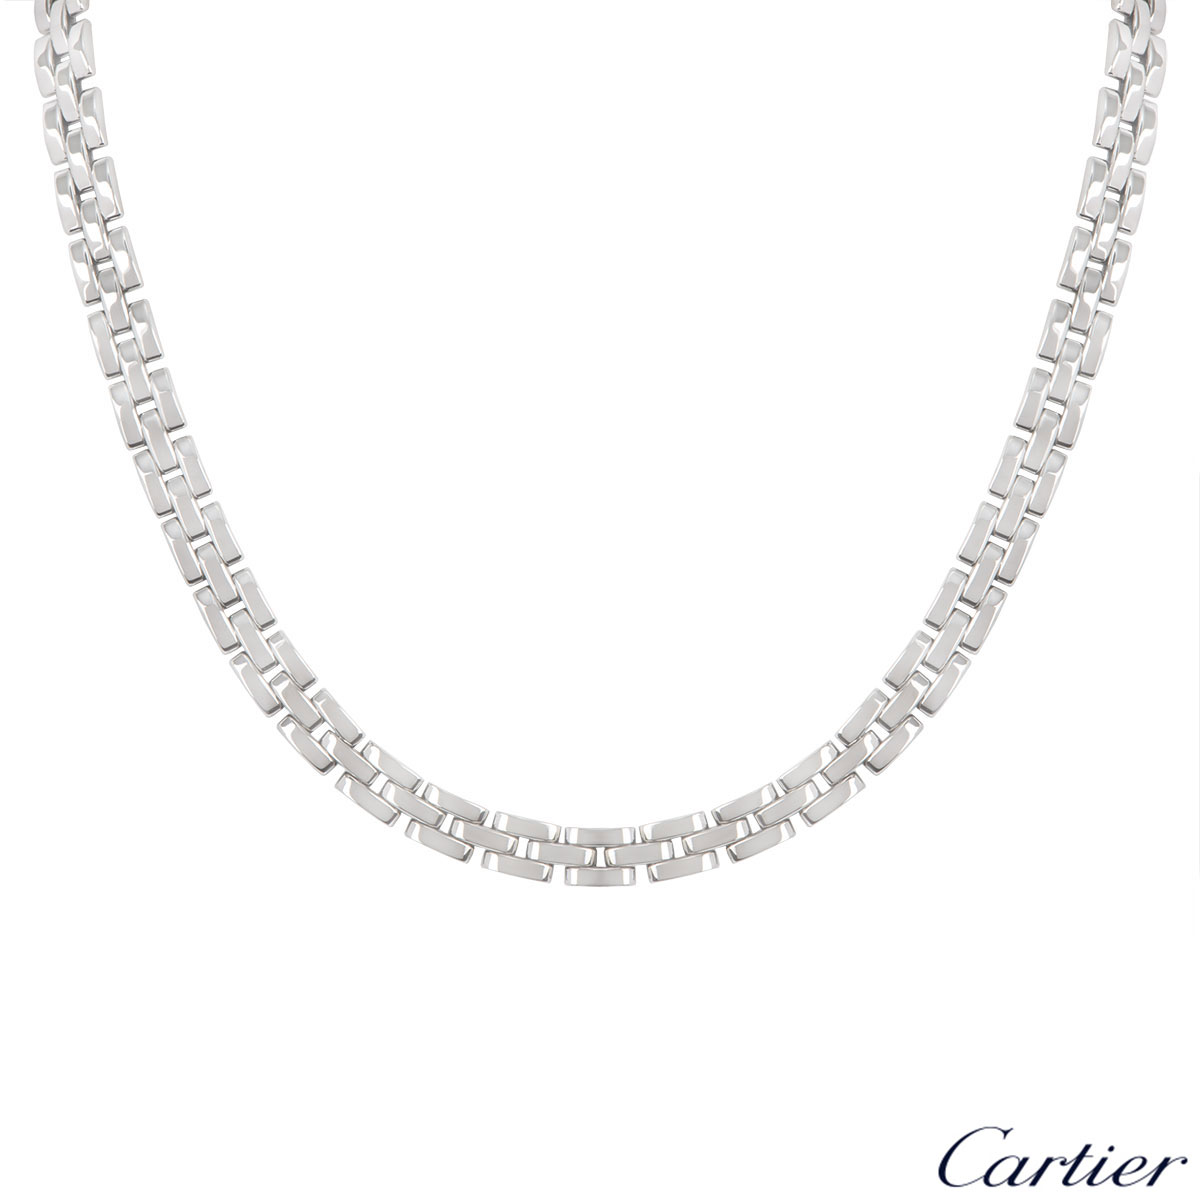 Cartier White Gold Maillon Panthere Necklace